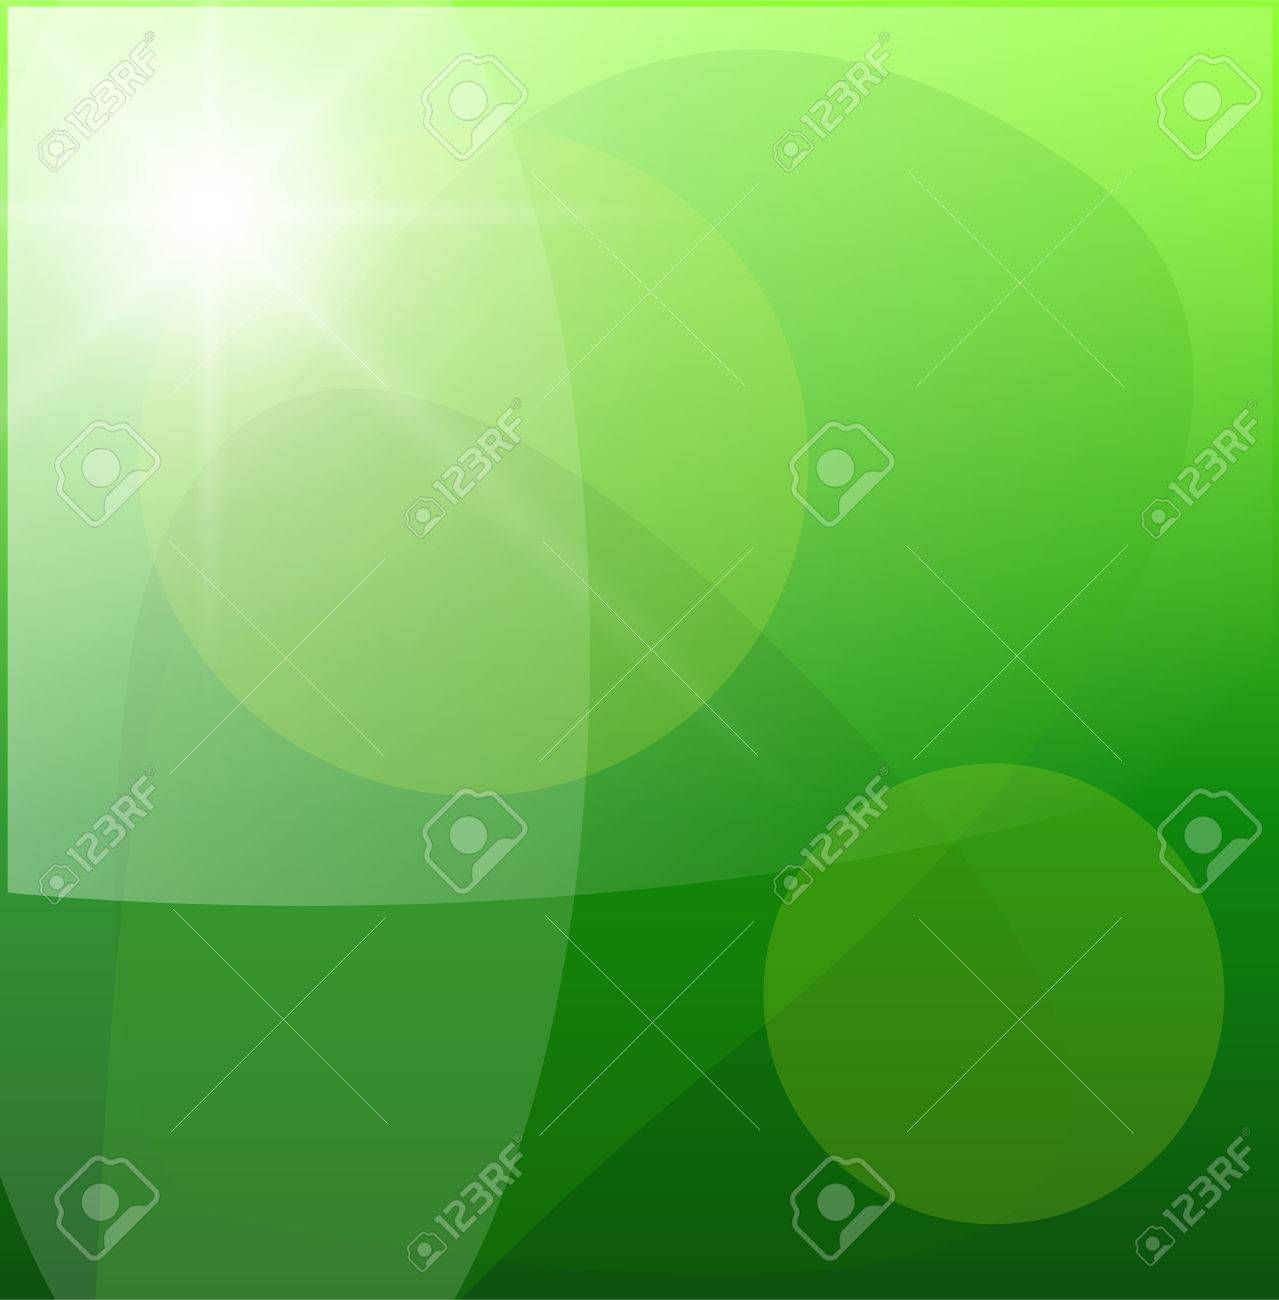 Beautiful green abstract background,   illustration. Stock Vector - 8710460